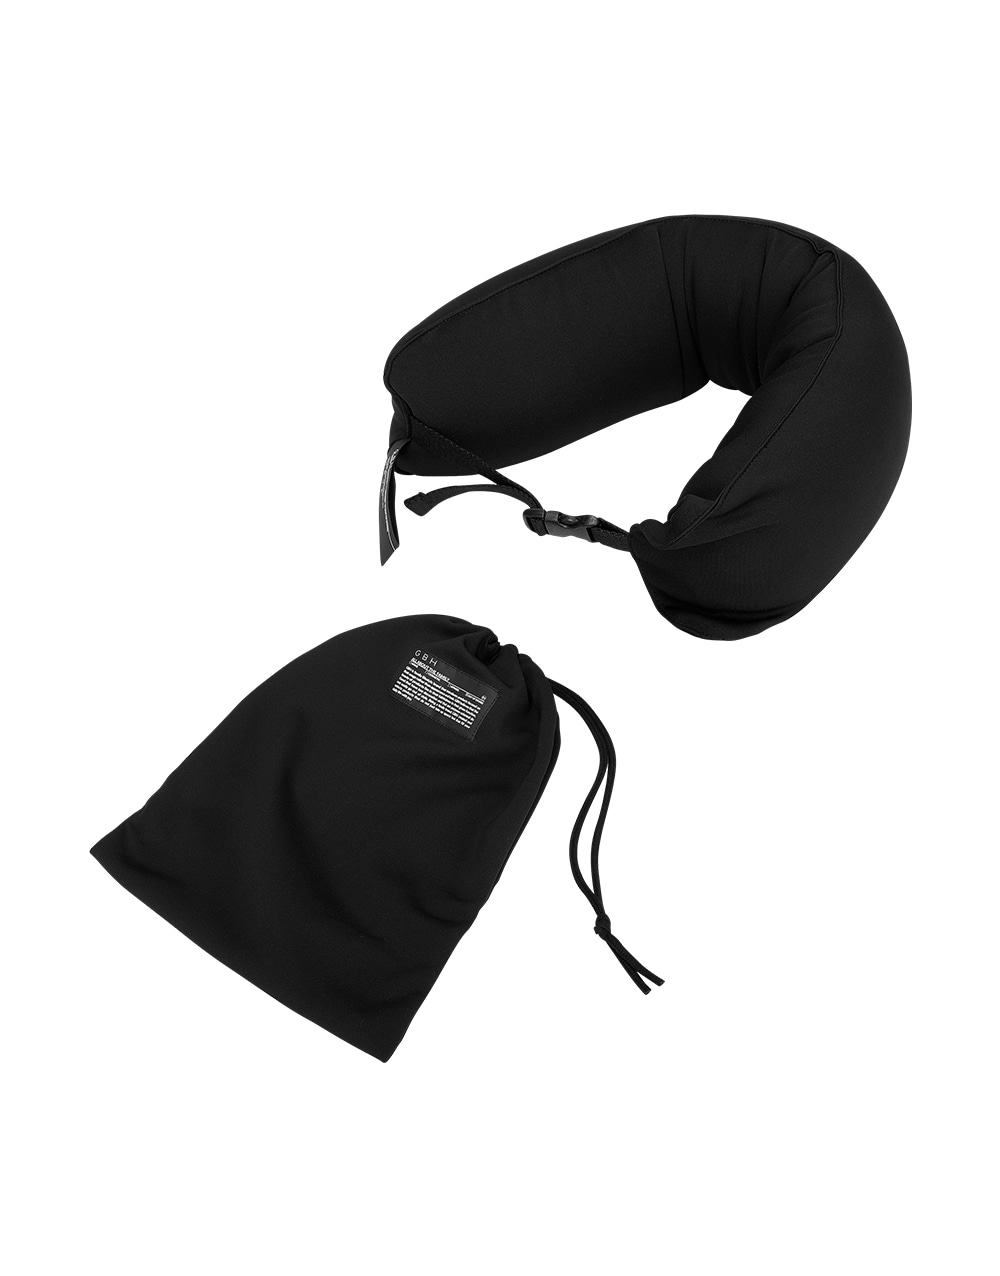 GBH HOME NECK PILLOW